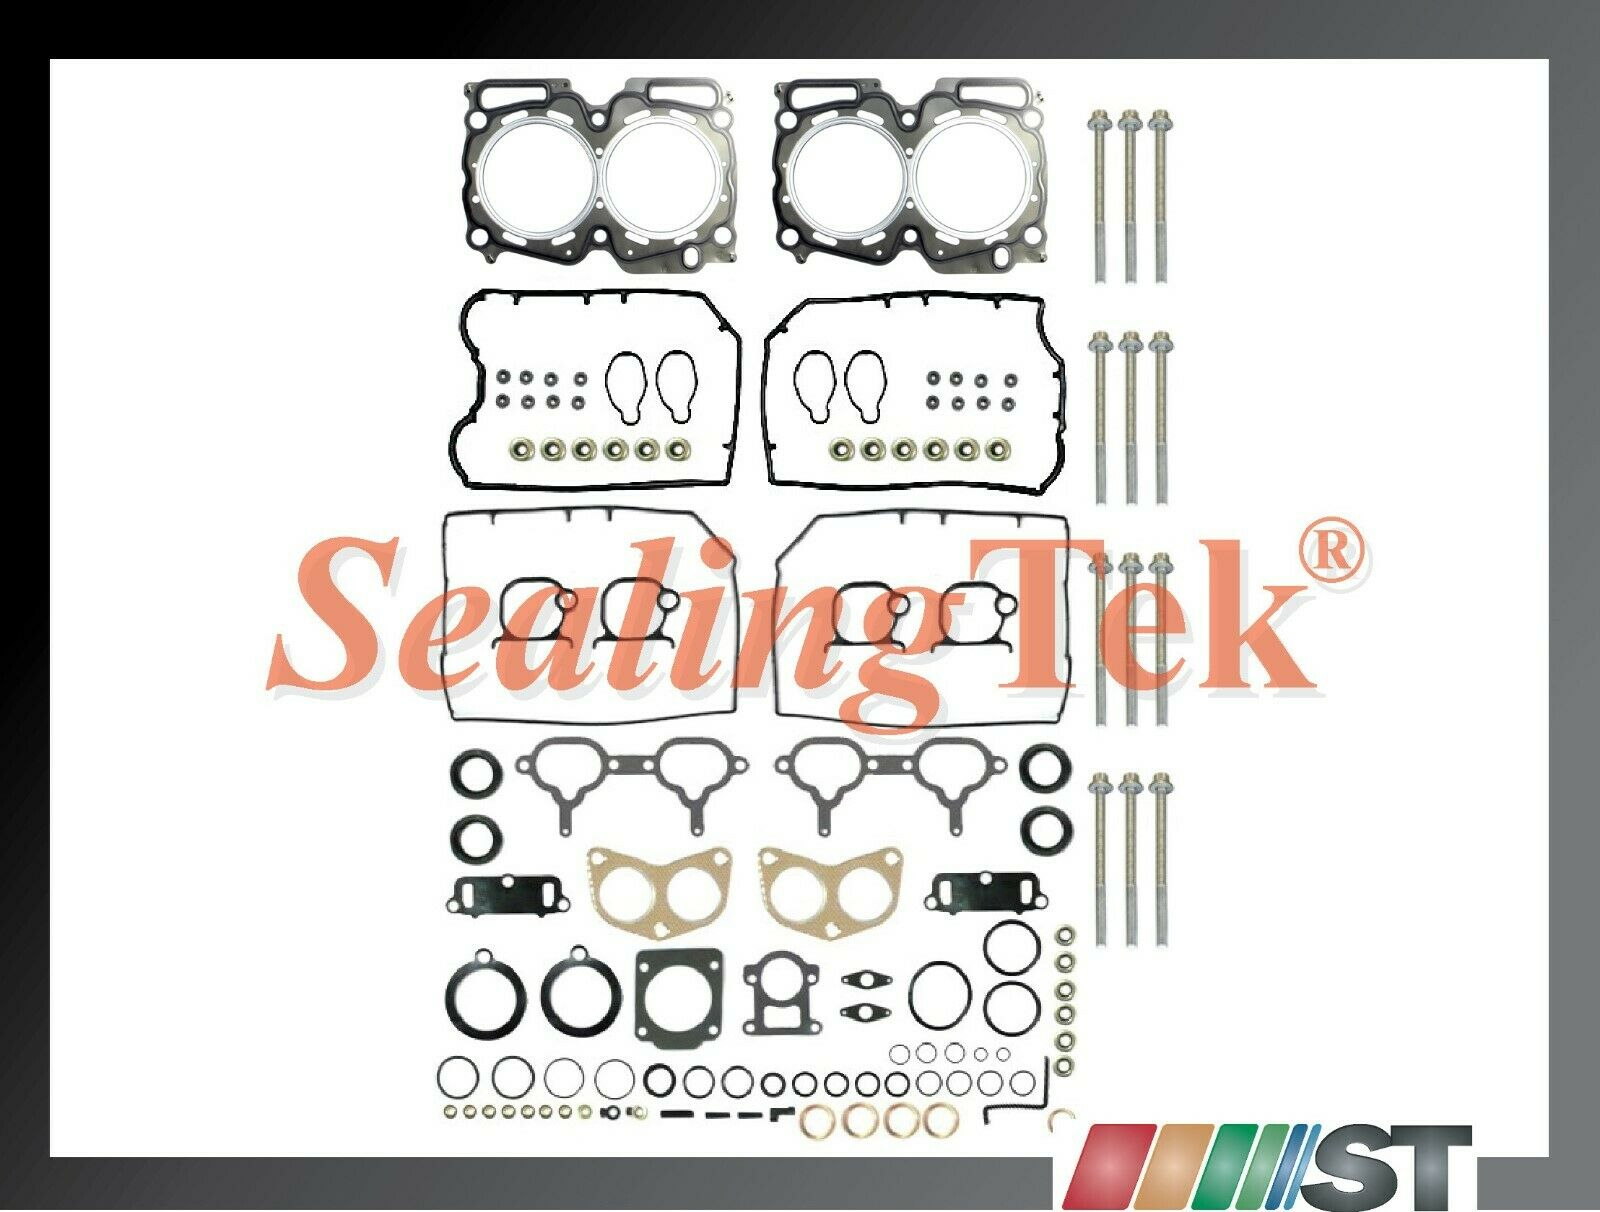 Head Gasket Bolts Set for 96-99 Subaru Impreza Legacy Forester 2.5 DOHC EJ25D